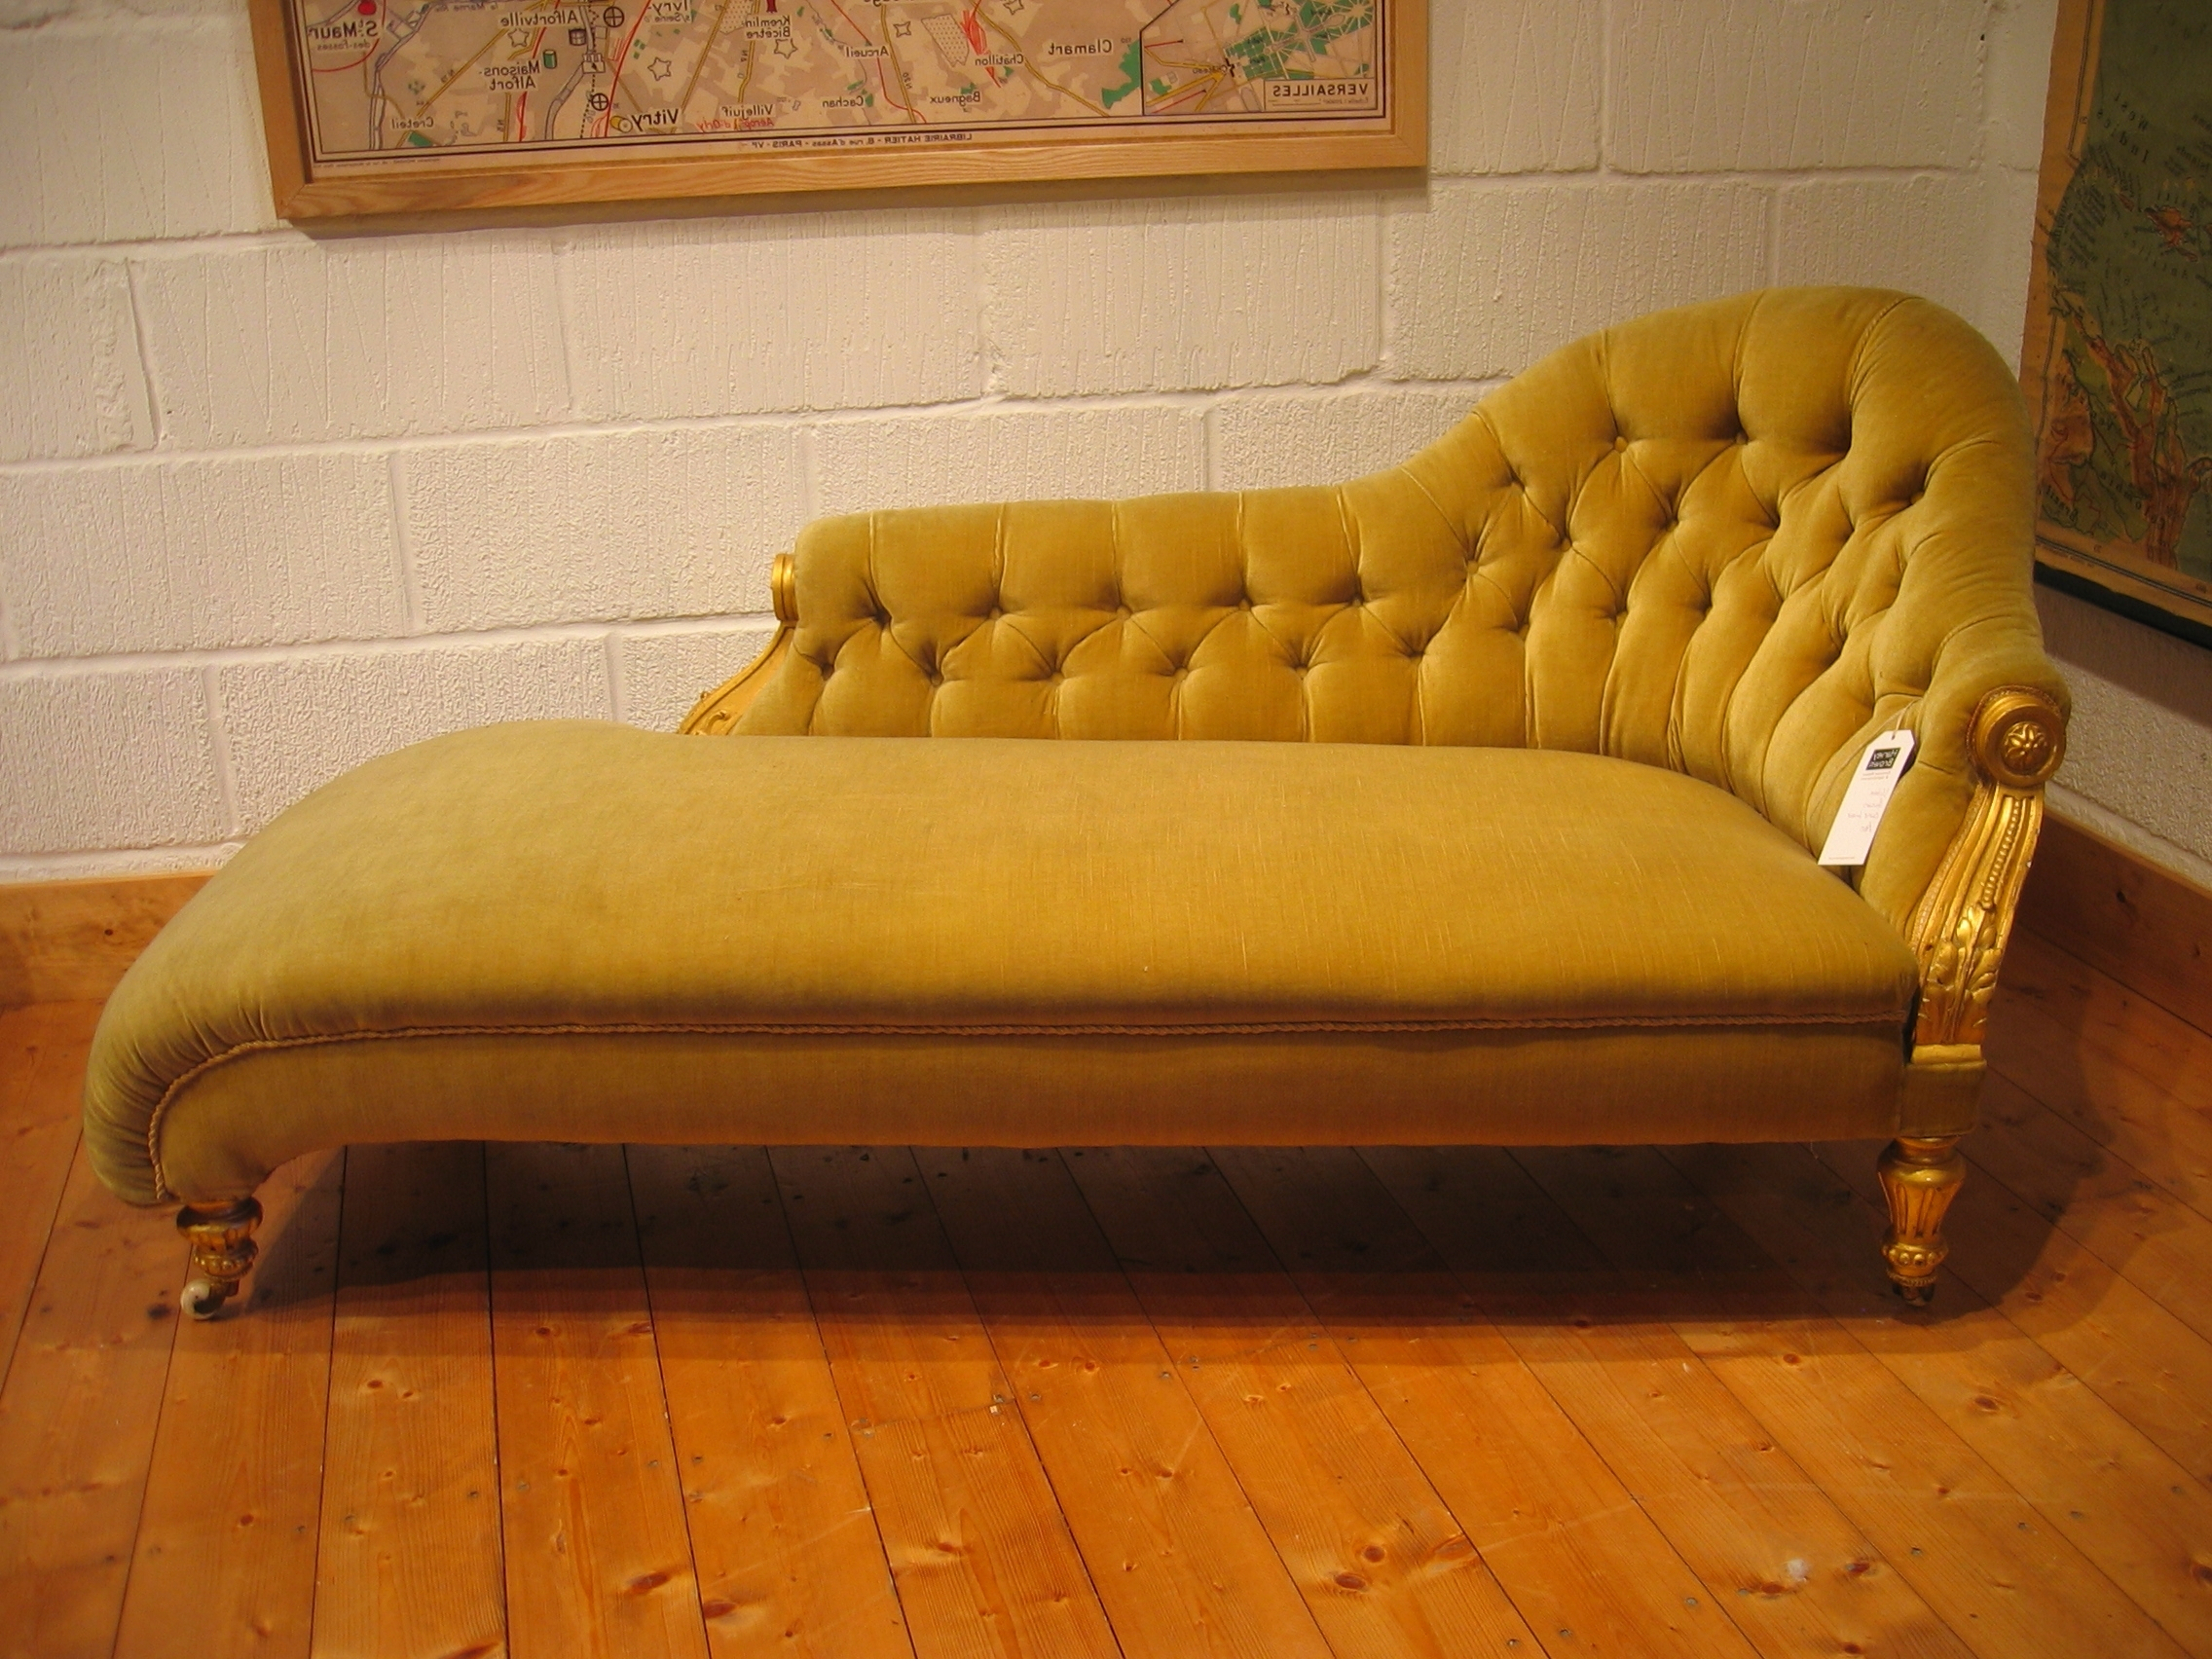 Widely Used Yellow Color Antique Victorian Chaise Lounge Sofa Bed With Wooden For Vintage Chaise Lounge Chairs (View 13 of 15)